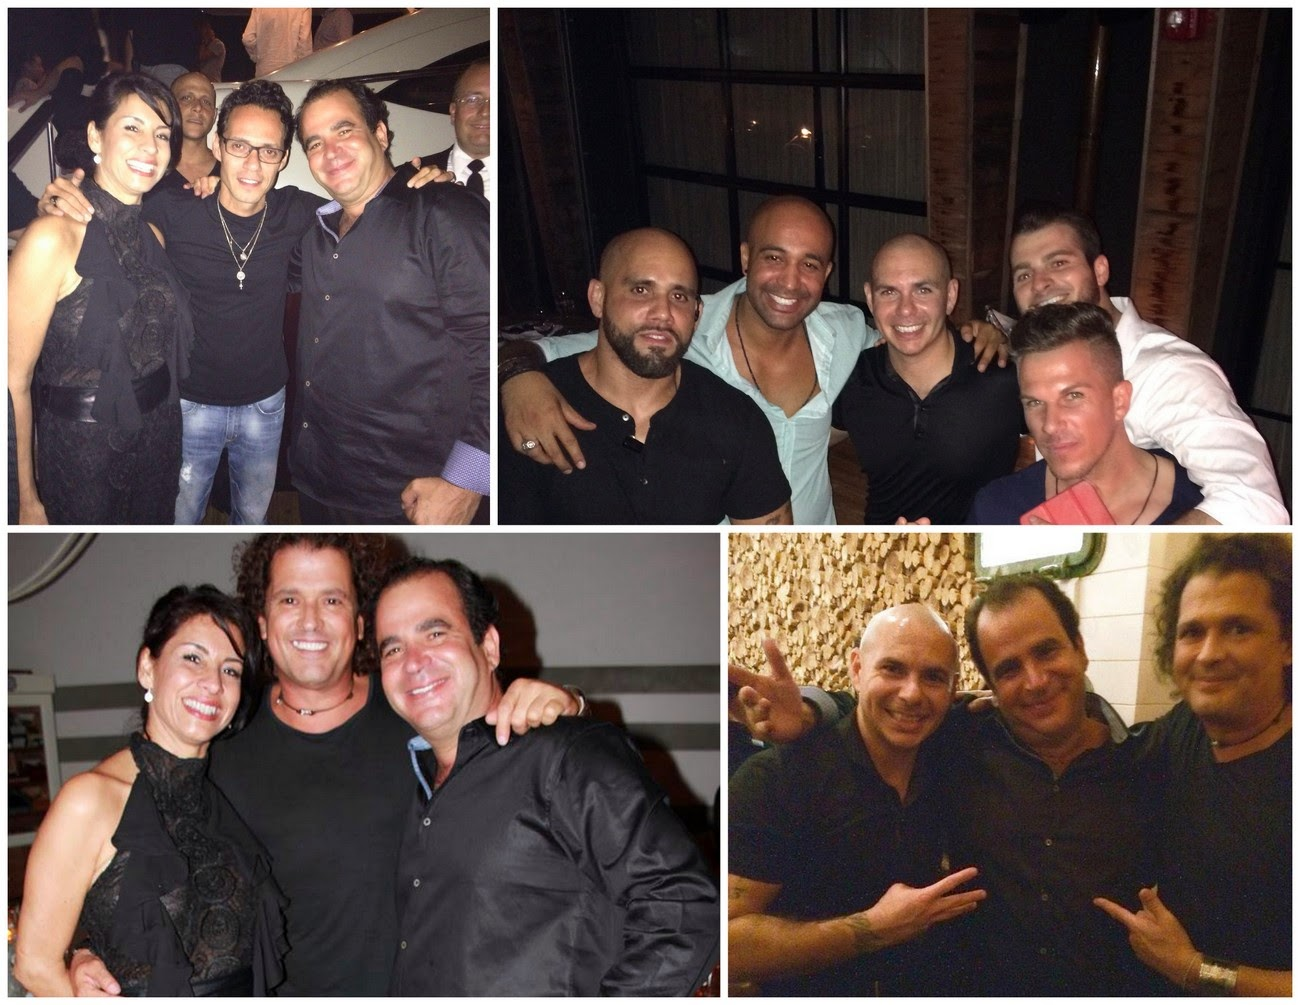 Celebrities in Miami: Marc Anthony, Pitbull and more at Seasalt and Pepper‏